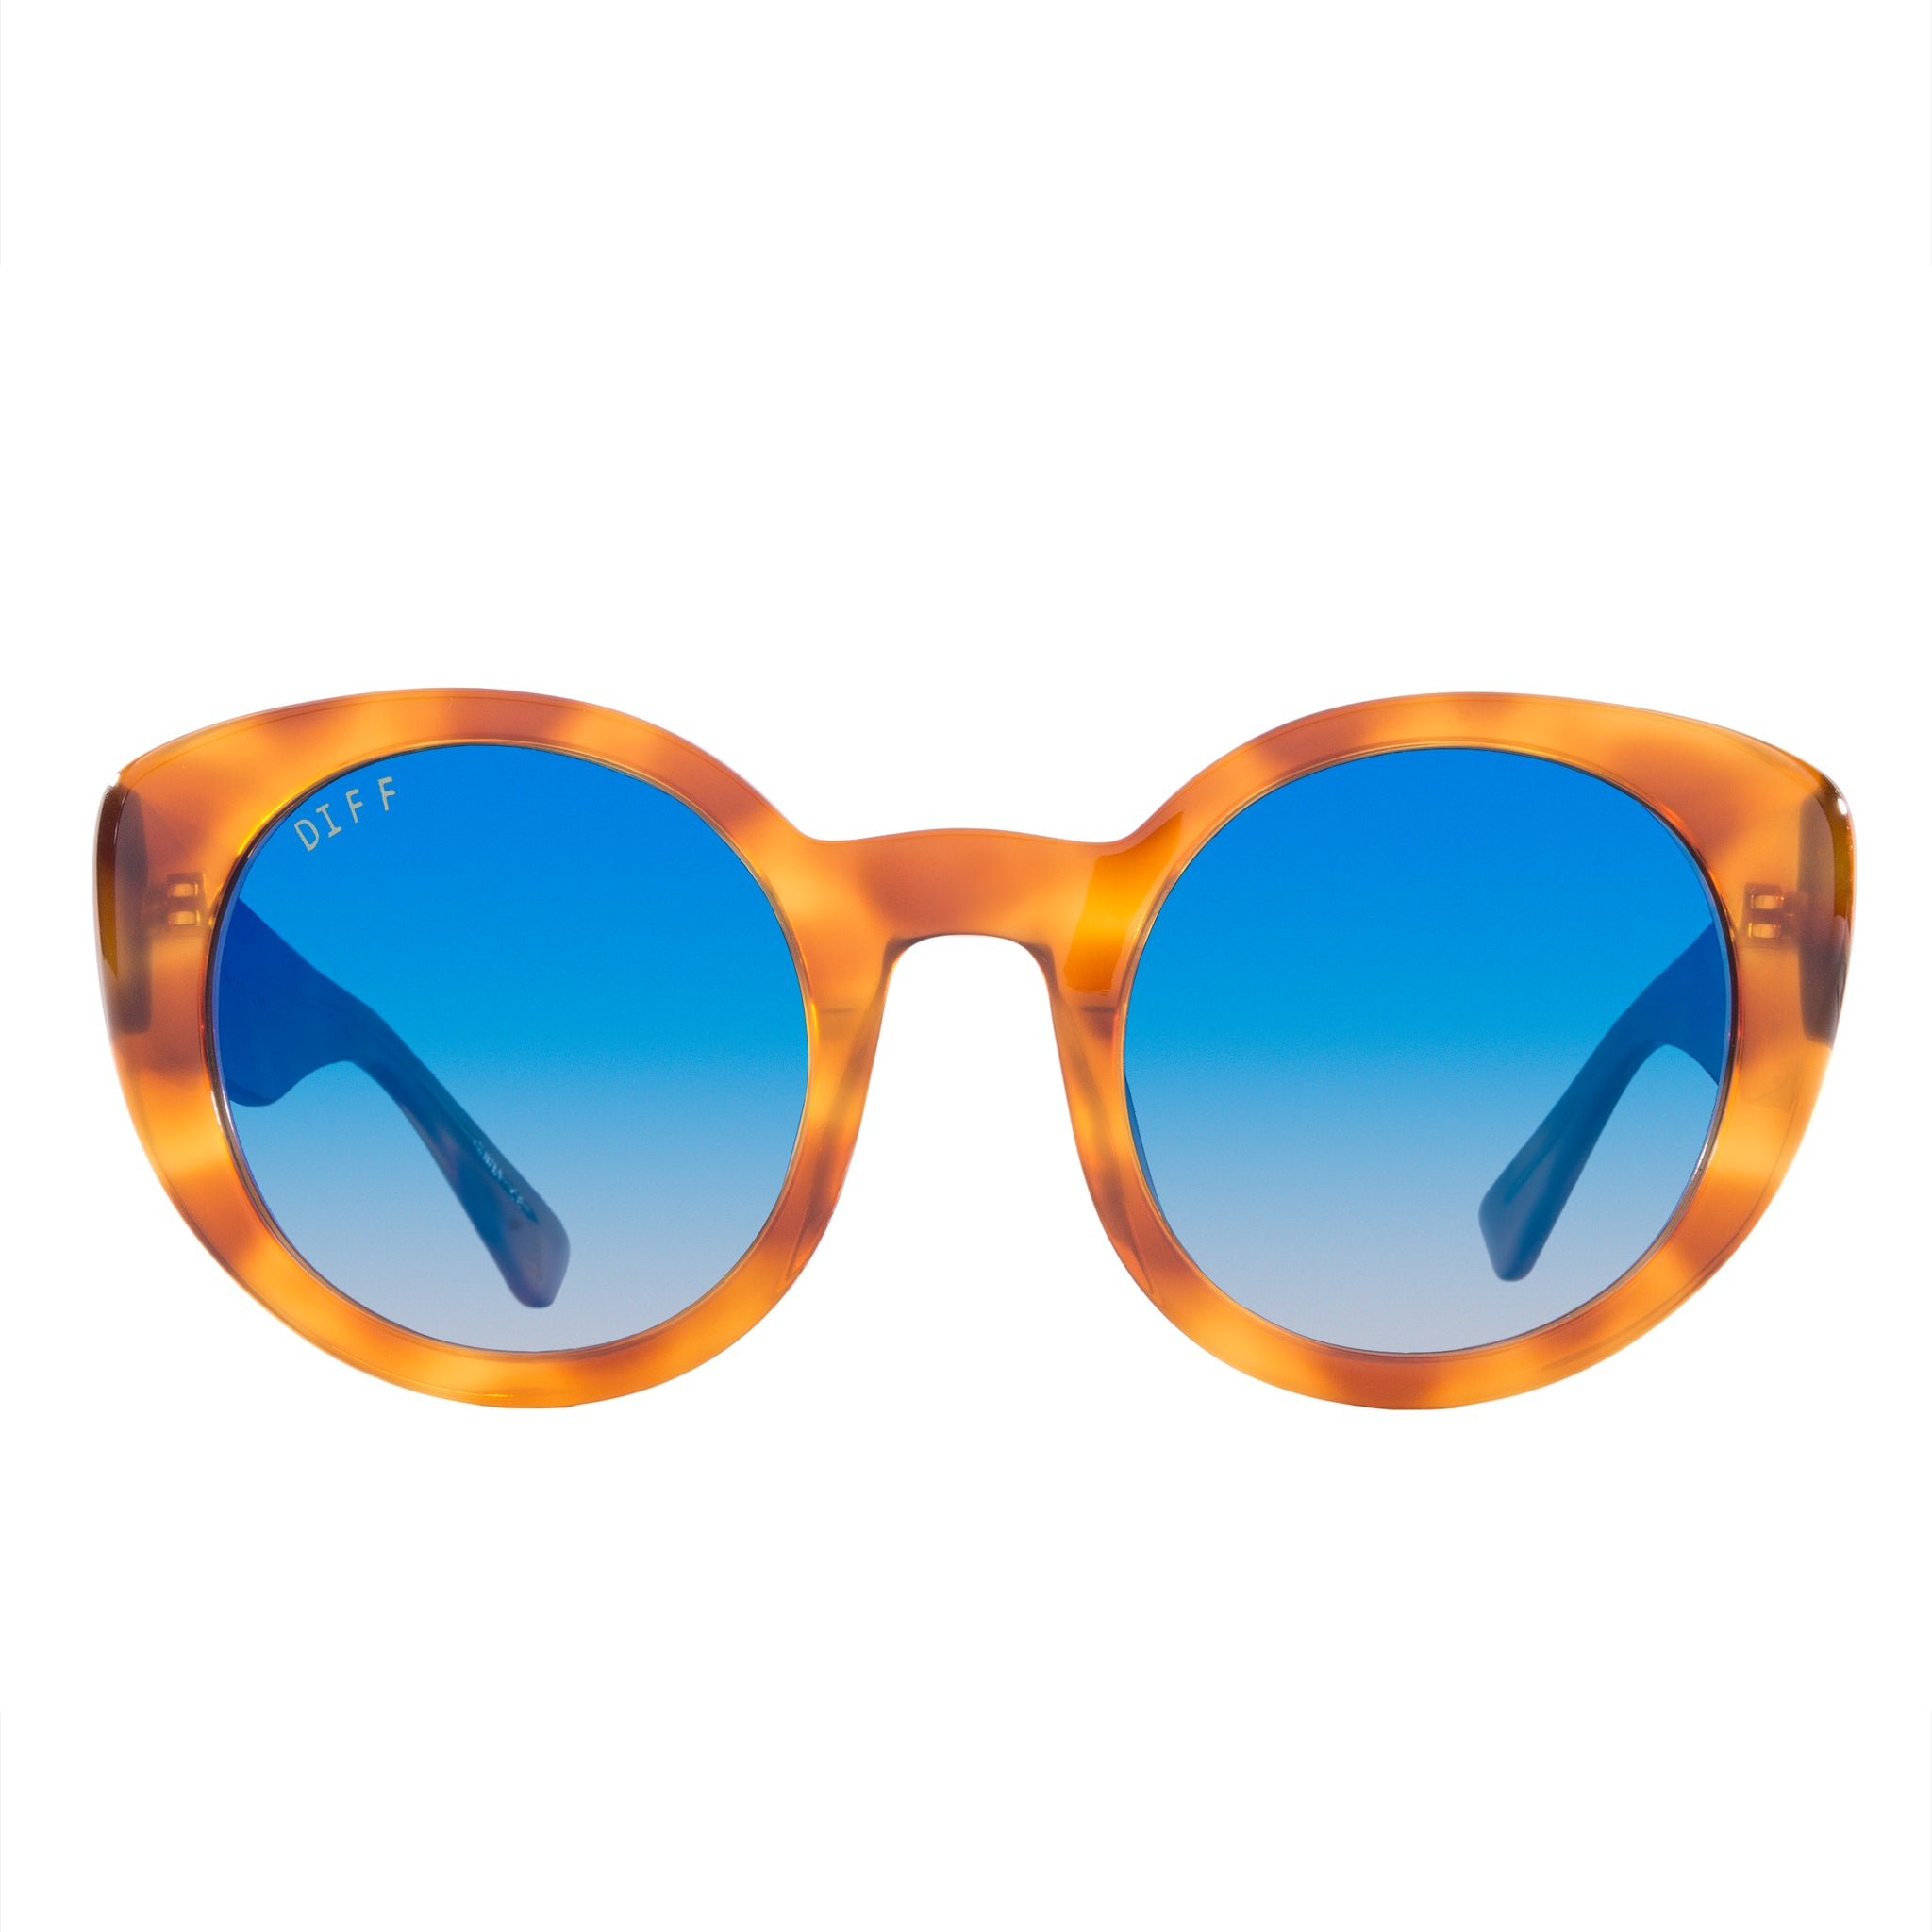 Women's Round Sunglasses - Luna Honey Tortoise Frame